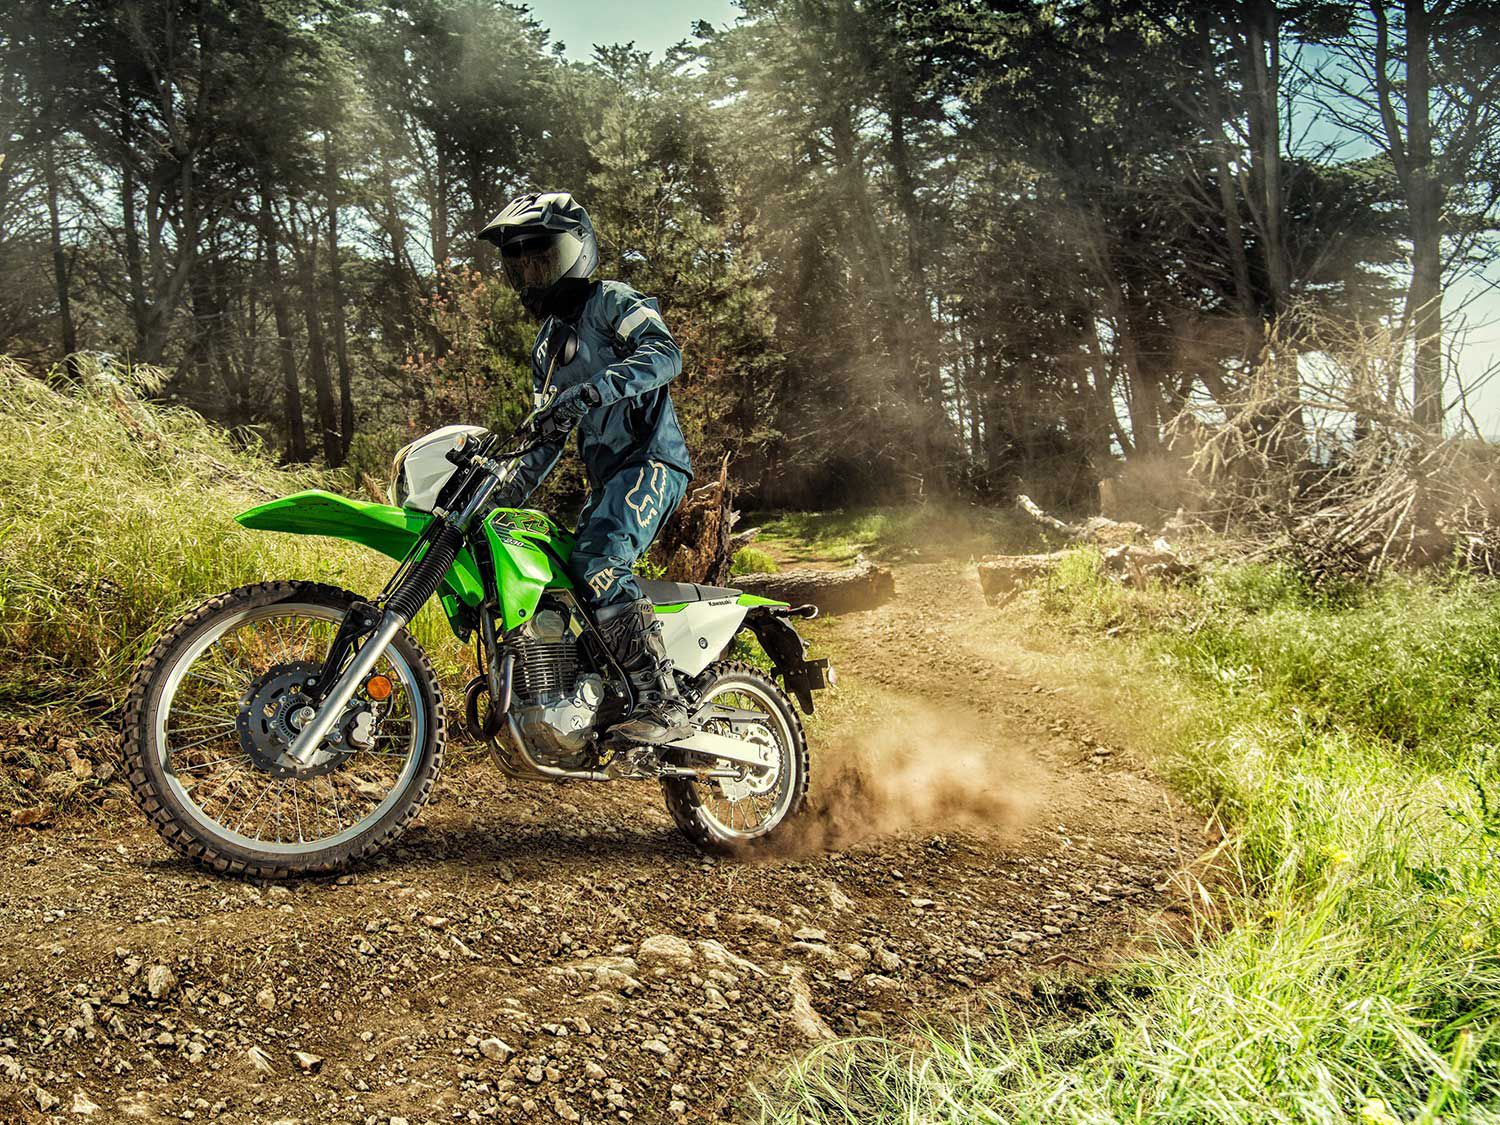 "<a href=""https://www.motorcyclistonline.com/2020-kawasaki-klx230-dual-sport-first-look/"">2020 Kawasaki KLX230 Dual Sport First Look</a>"